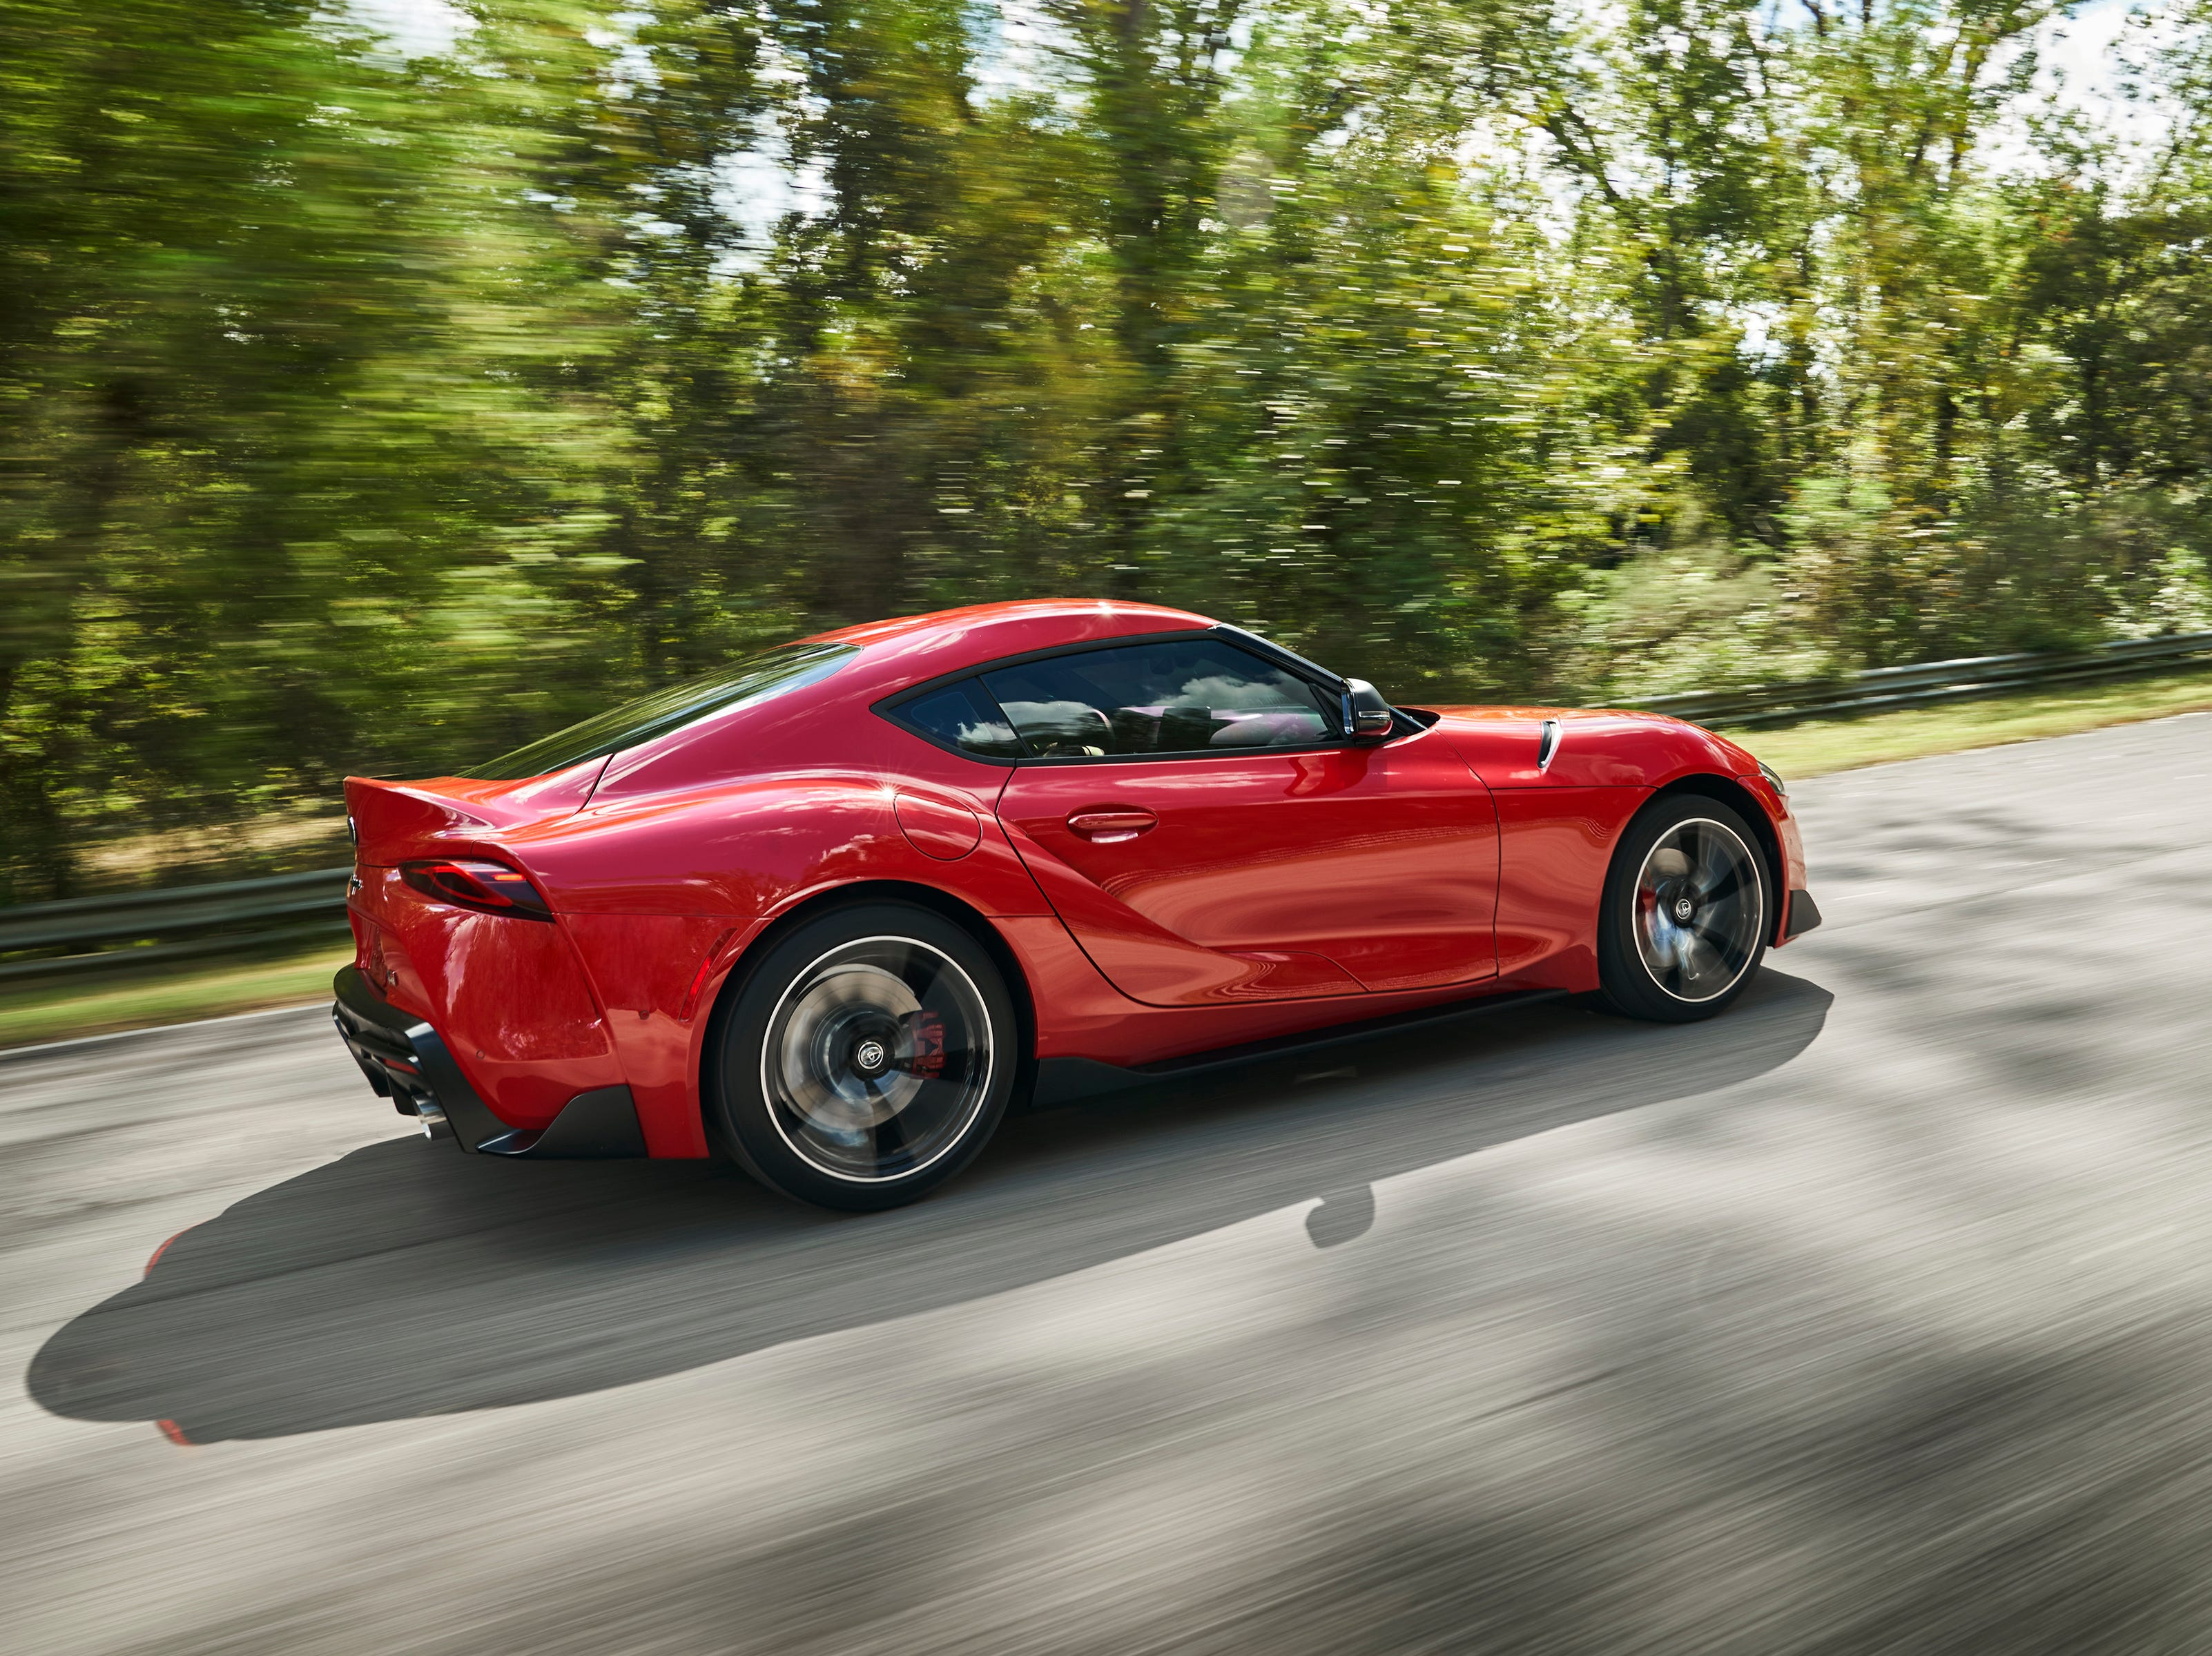 """""""The 8-speed automatic transmission delivers quick up- and downshifts and features paddle shifters for manual control when desired. Short ratios for the lower gears and a Launch Control function enable powerful acceleration with maximum traction."""""""